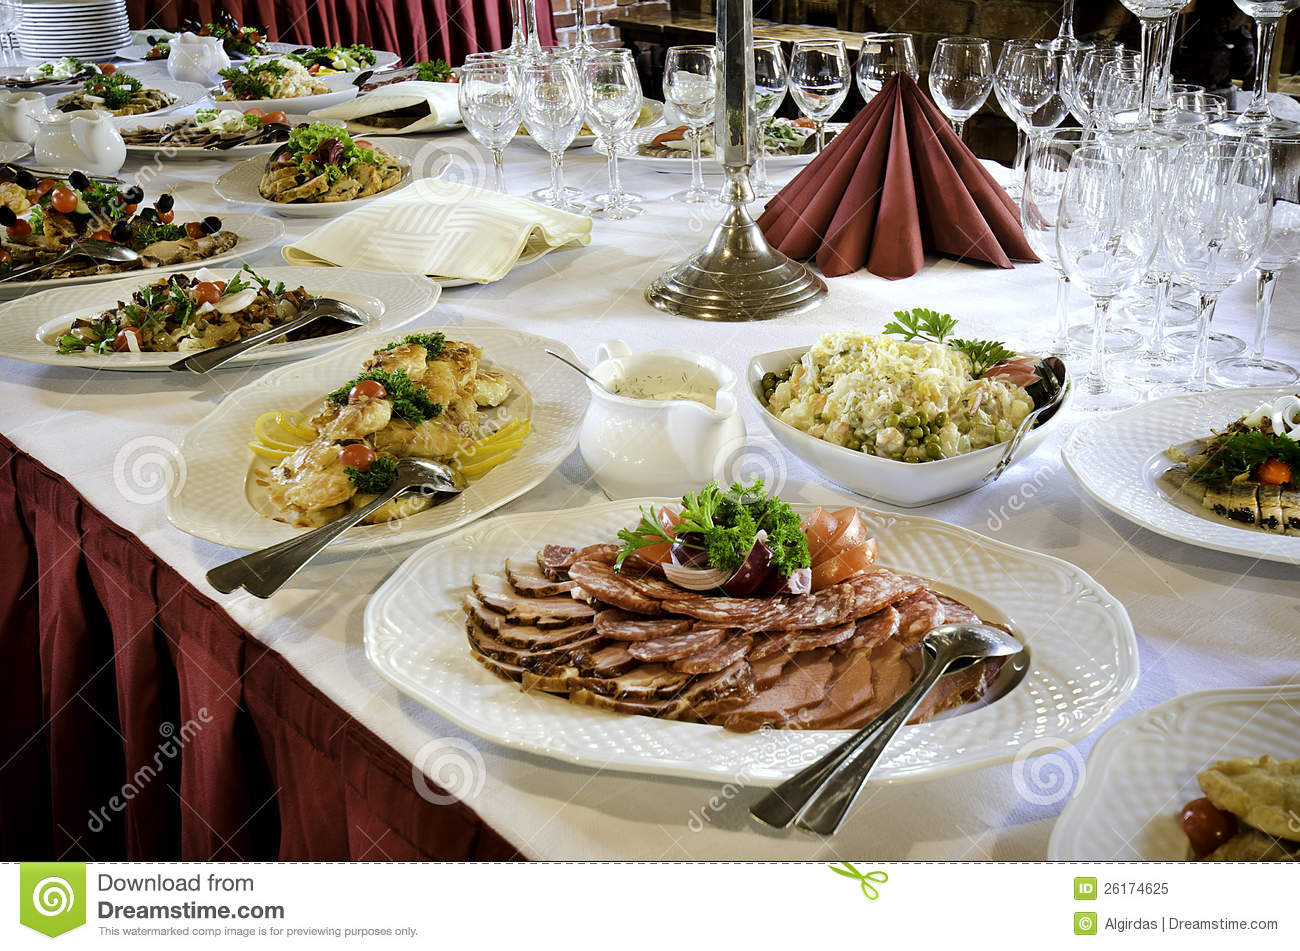 banquet table food stock image image of cold full cuts 26174625. Black Bedroom Furniture Sets. Home Design Ideas